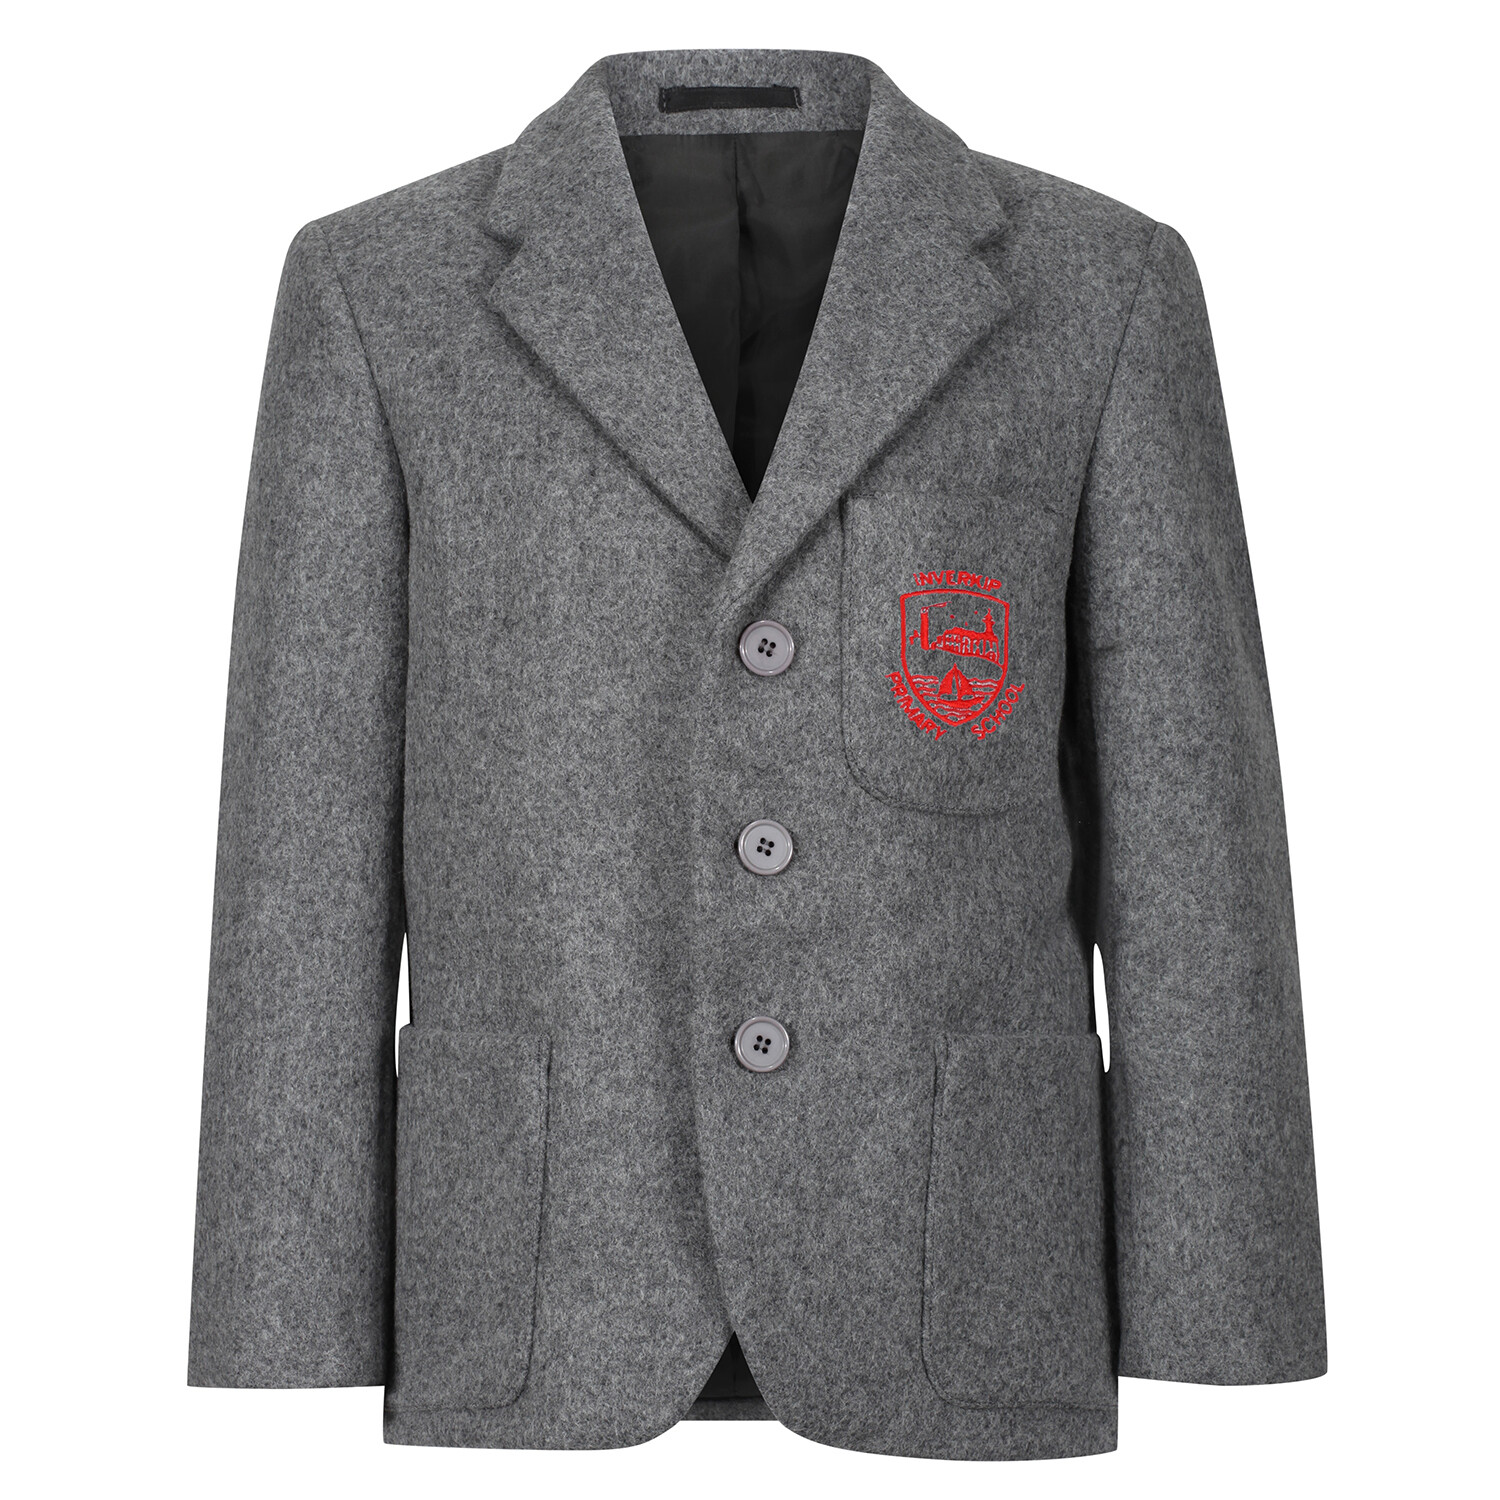 Inverkip Primary 'Wool' Blazer (Made-to-Order)